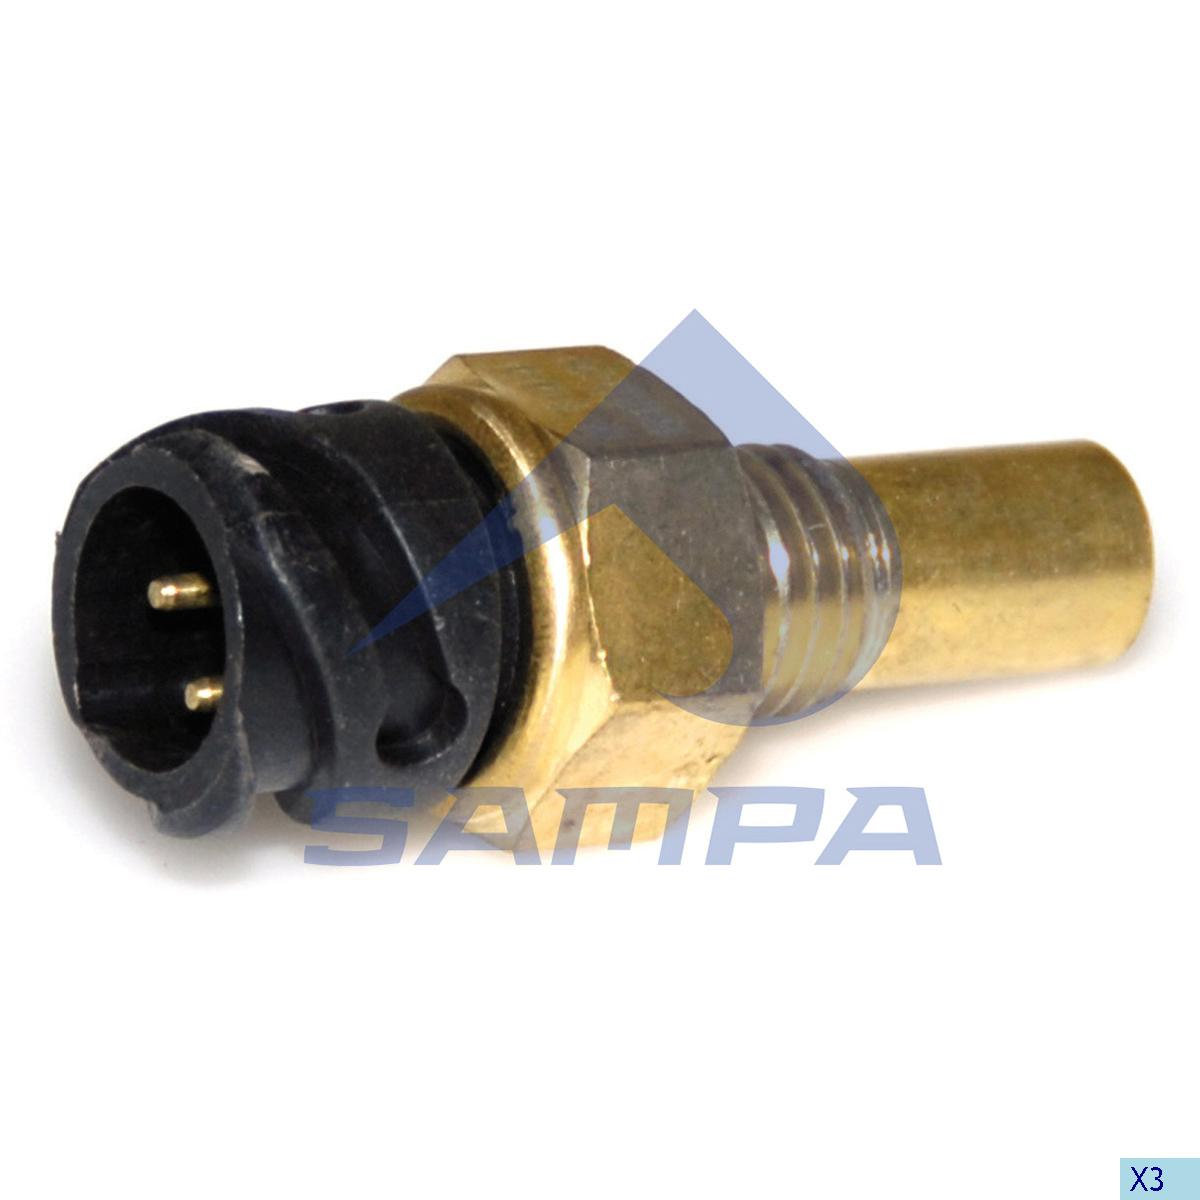 Temperature Sensor, Man, Electric System